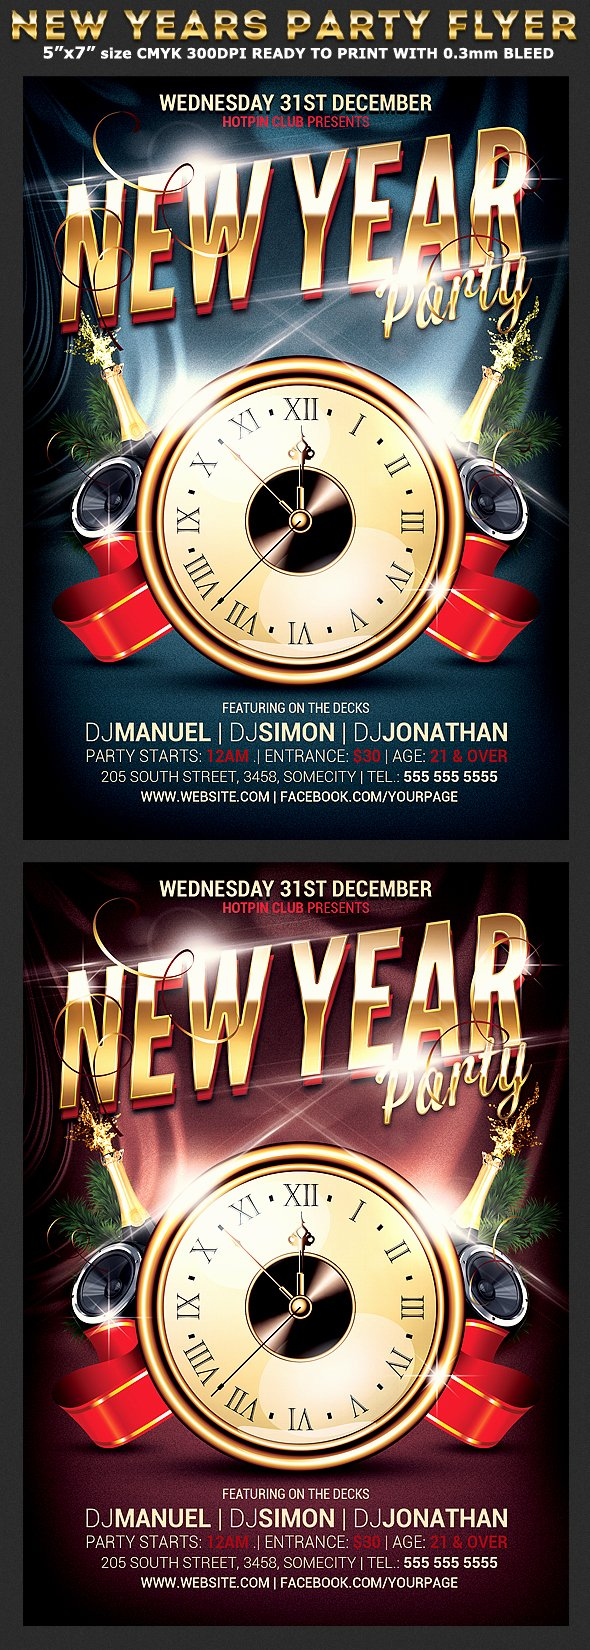 New Year Flyers Template Elegant New Years Eve Party Flyer Template